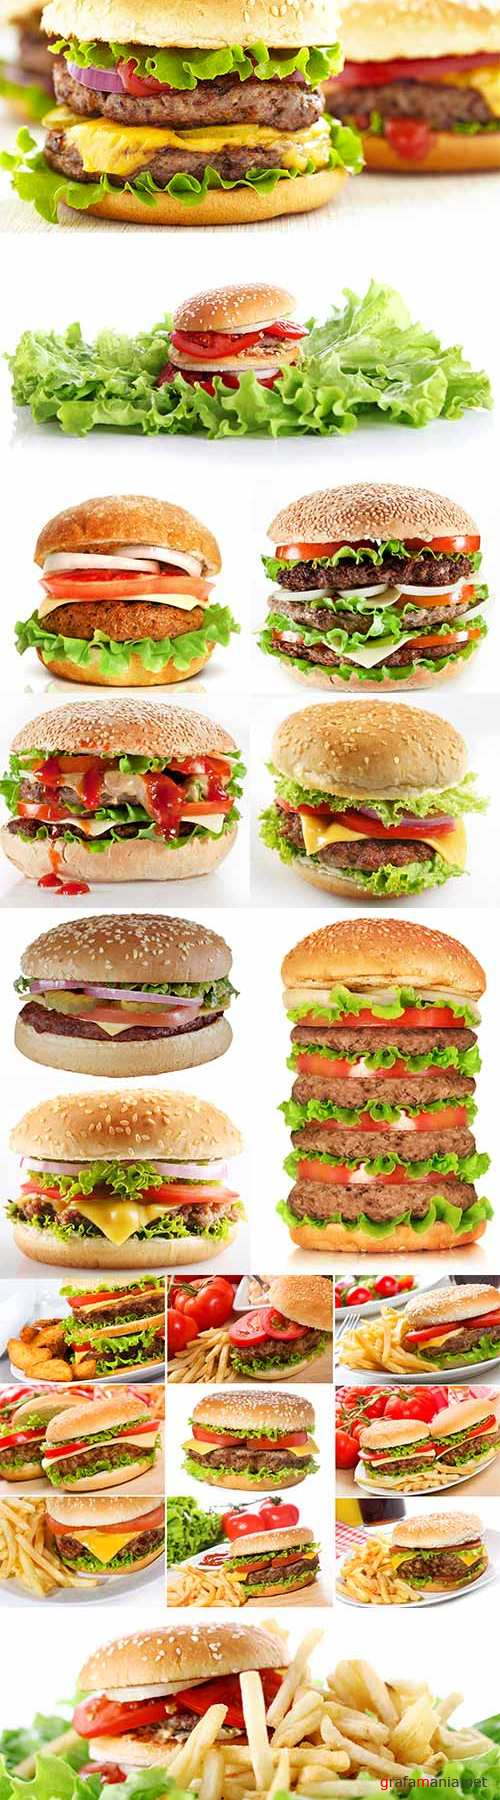 Fast food delicious burgers